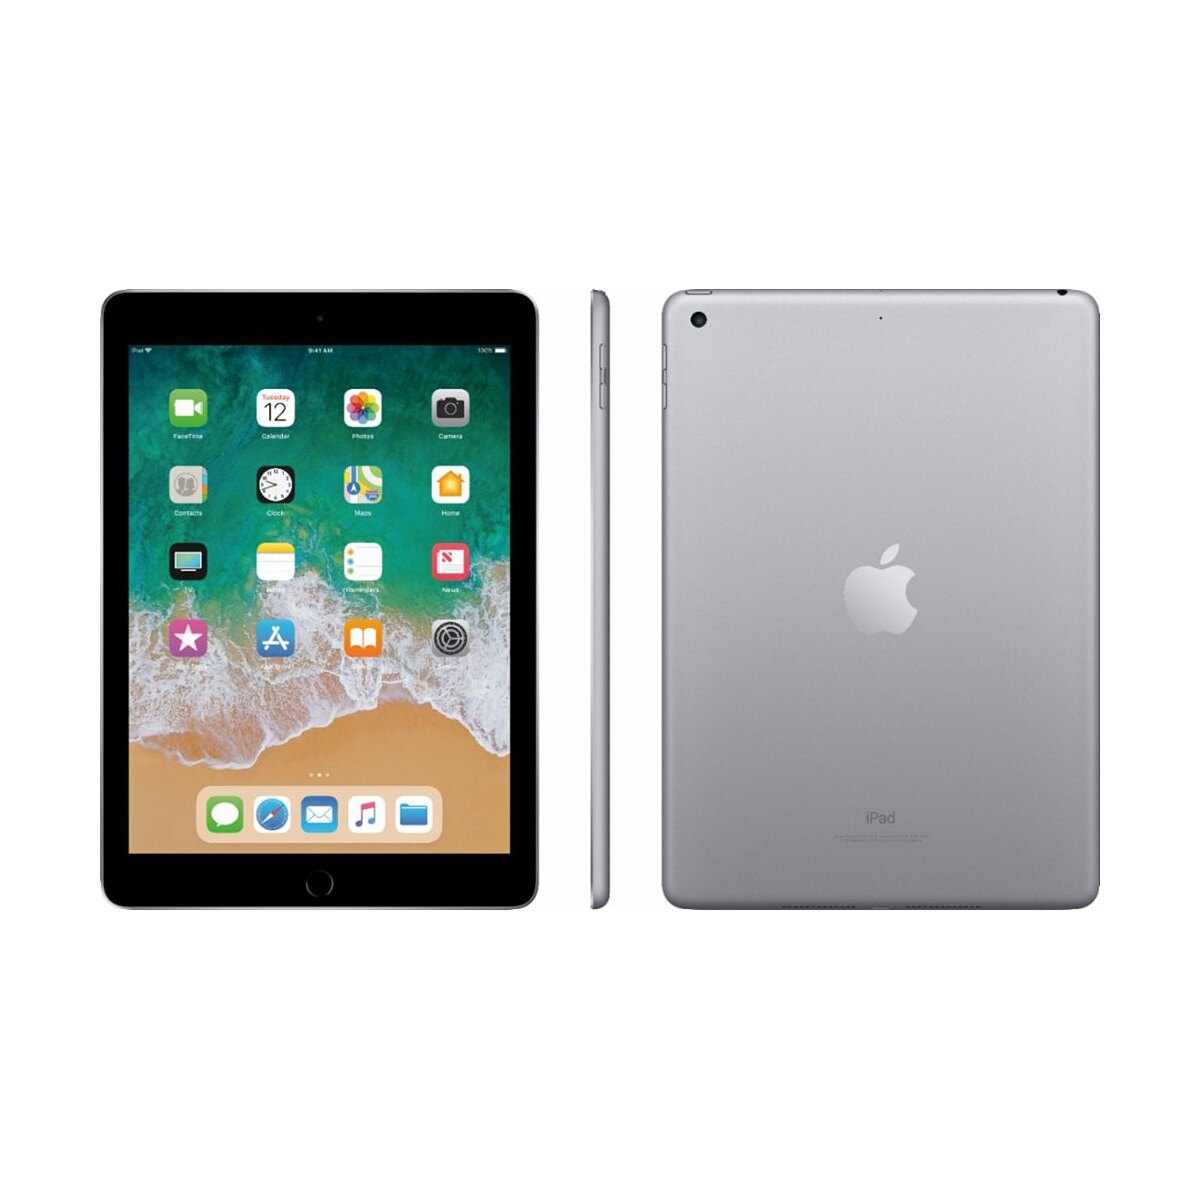 "Apple iPad 9.7"" Multi-Touch Retina Display 32GB A10 Chip Wi-Fi Tablet MR7F2LL/A - Space Gray (2018) 2"